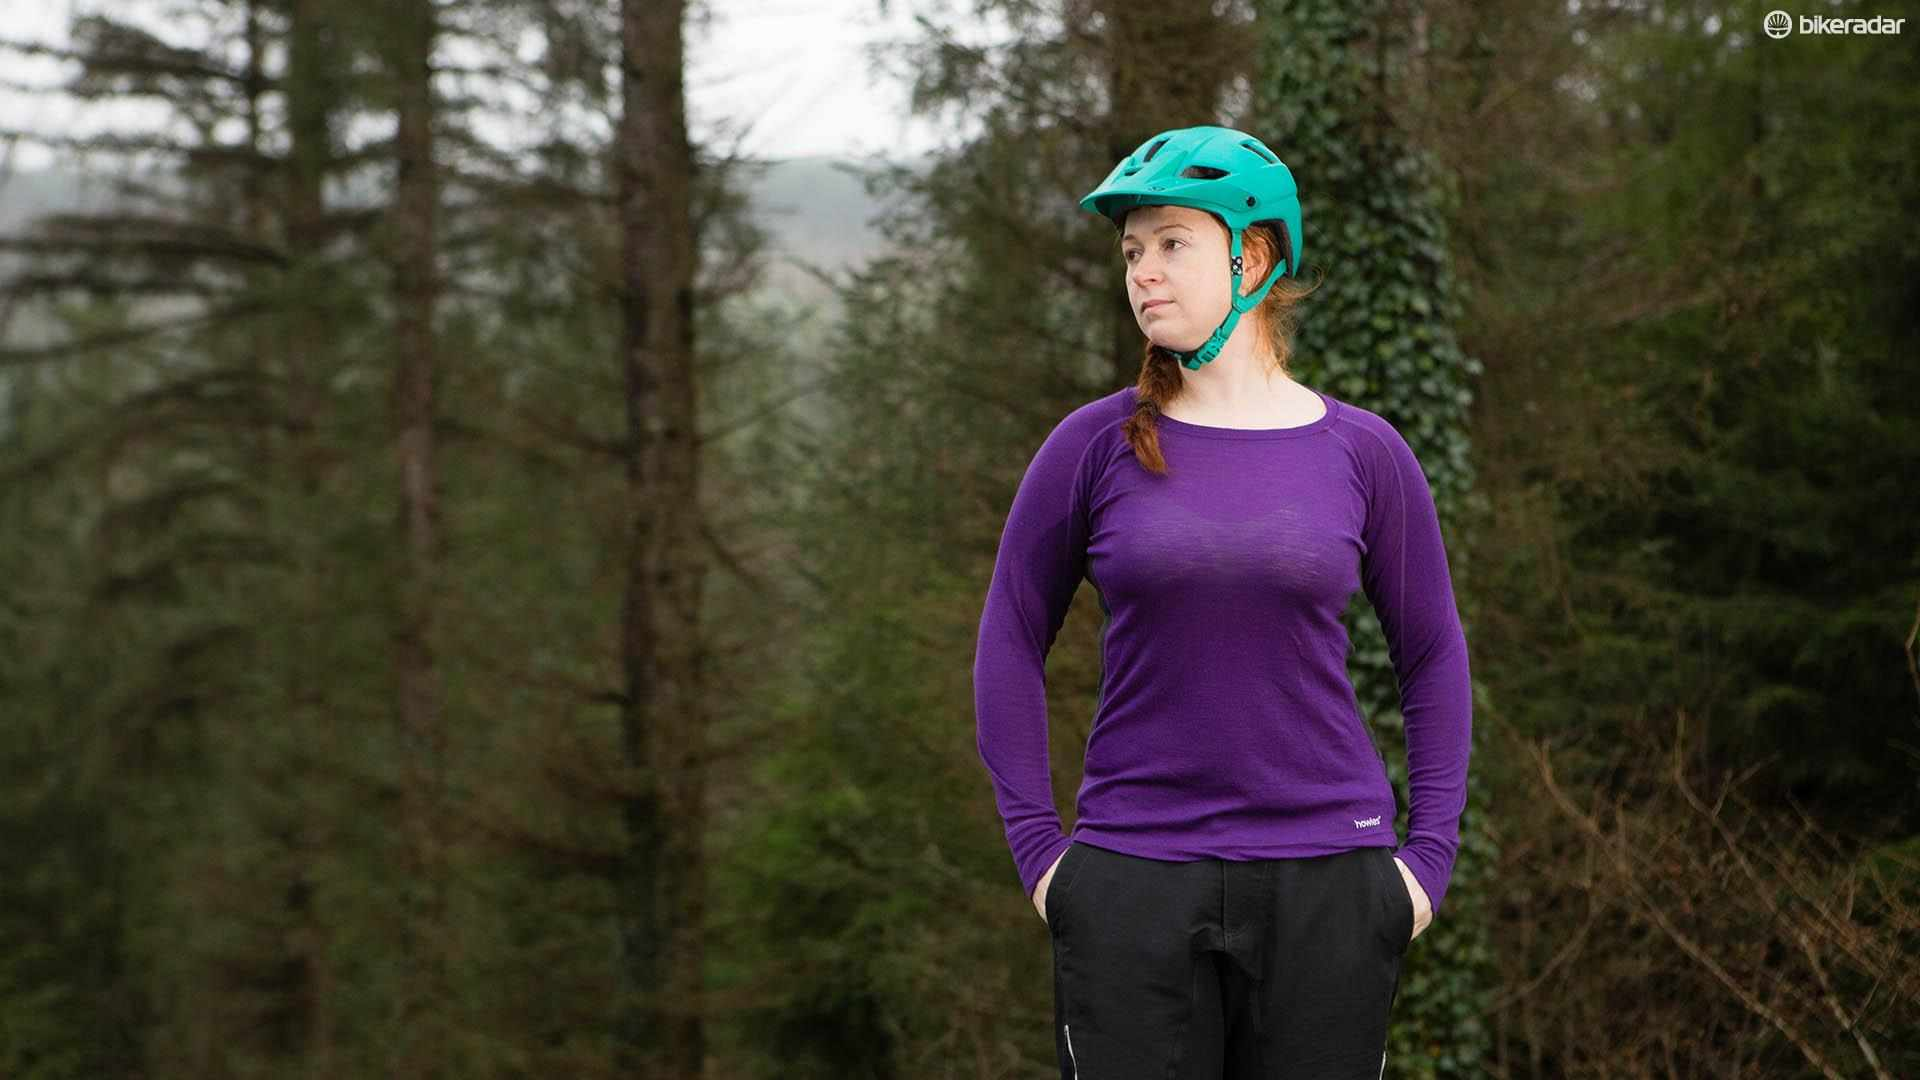 The Howies Women's Light Merino long-sleeve base layer